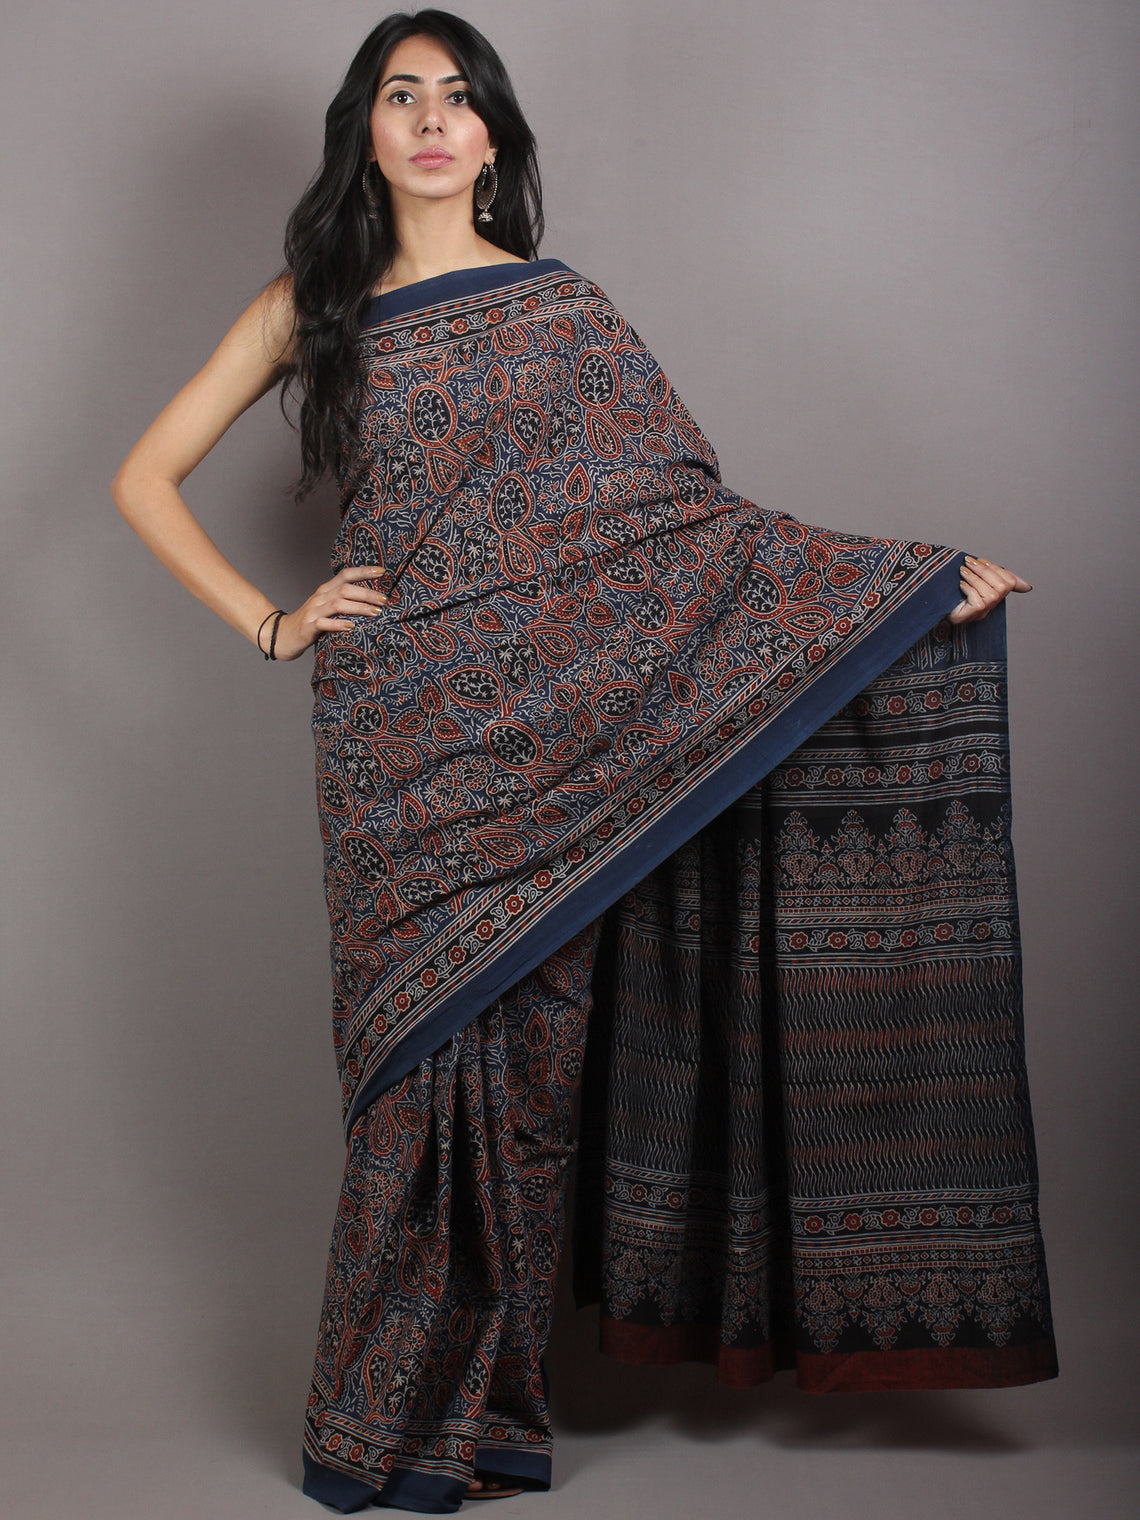 Indigo Beige Maroon Black Mughal Nakashi Ajrakh Hand Block Printed in Natural Vegetable Colors Cotton Mul Saree - S03170667